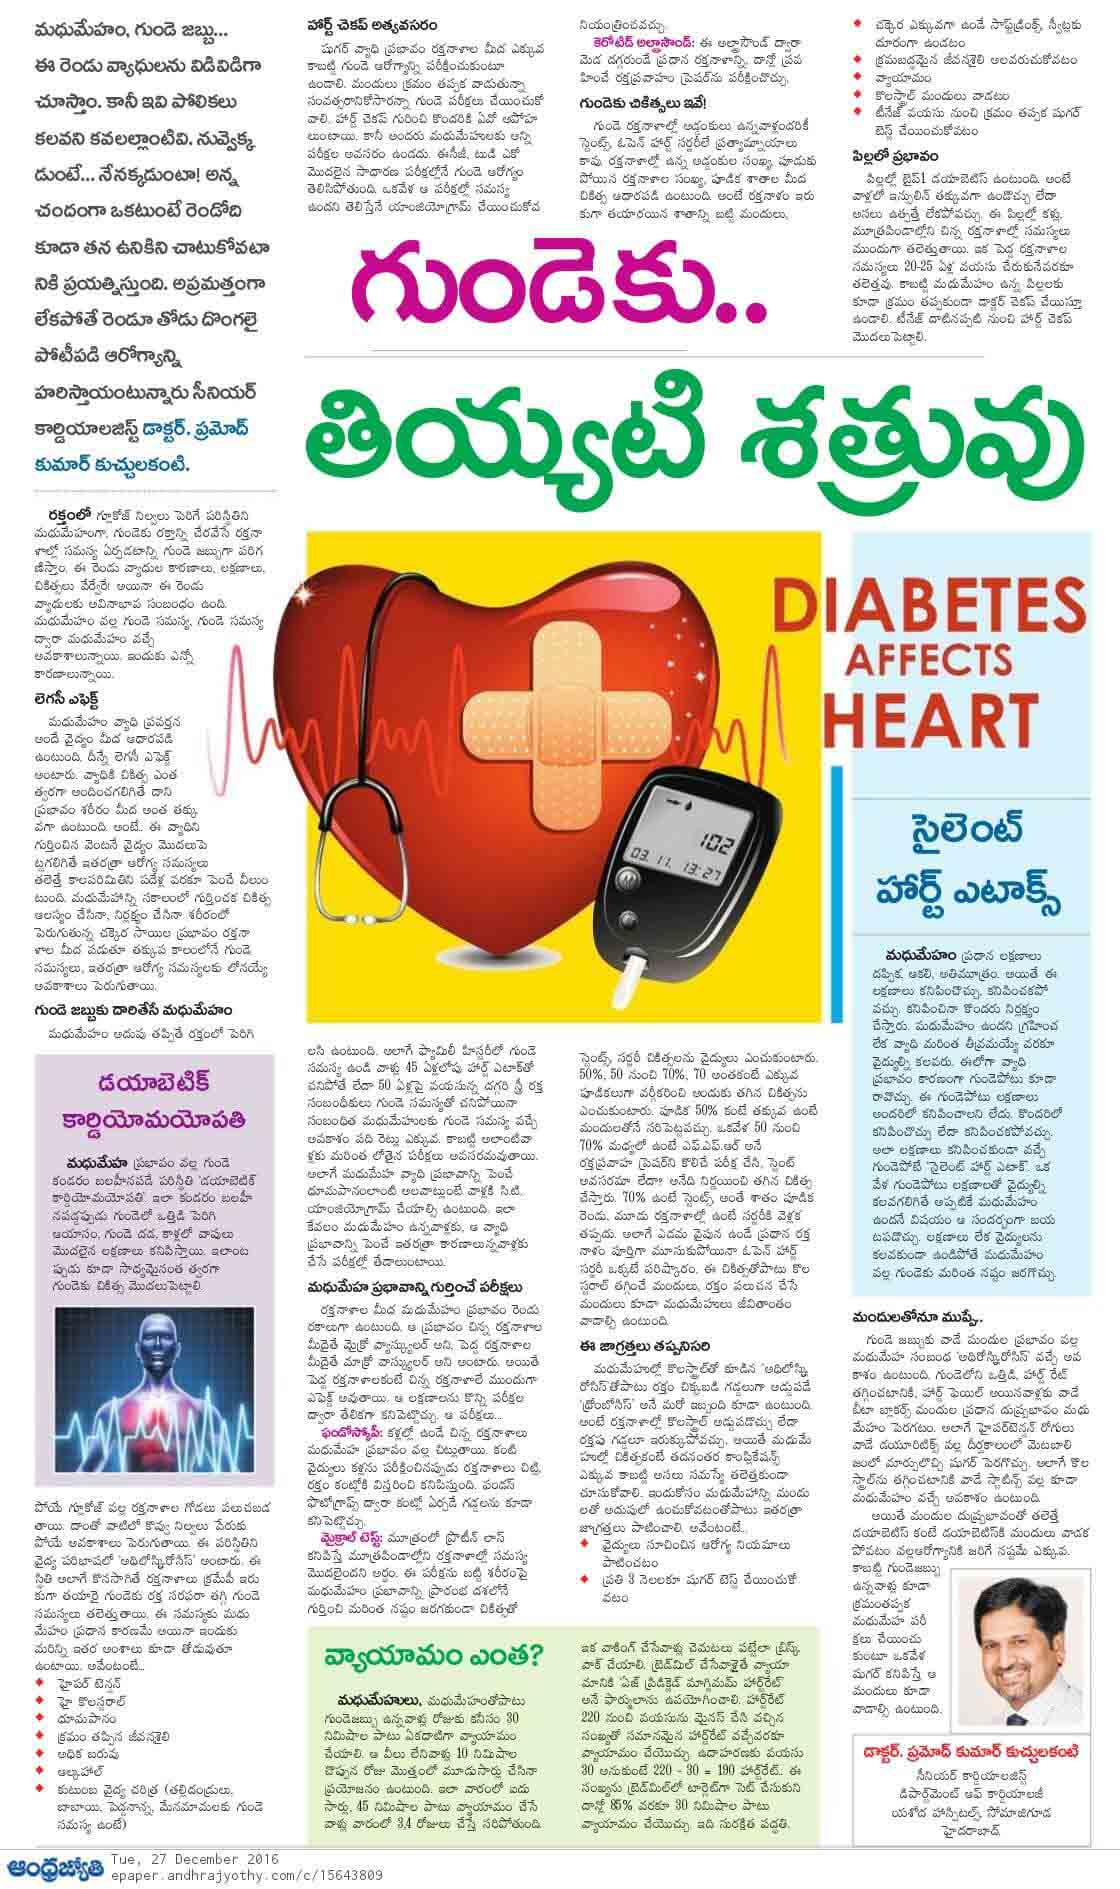 Diabetes Affects the Heart